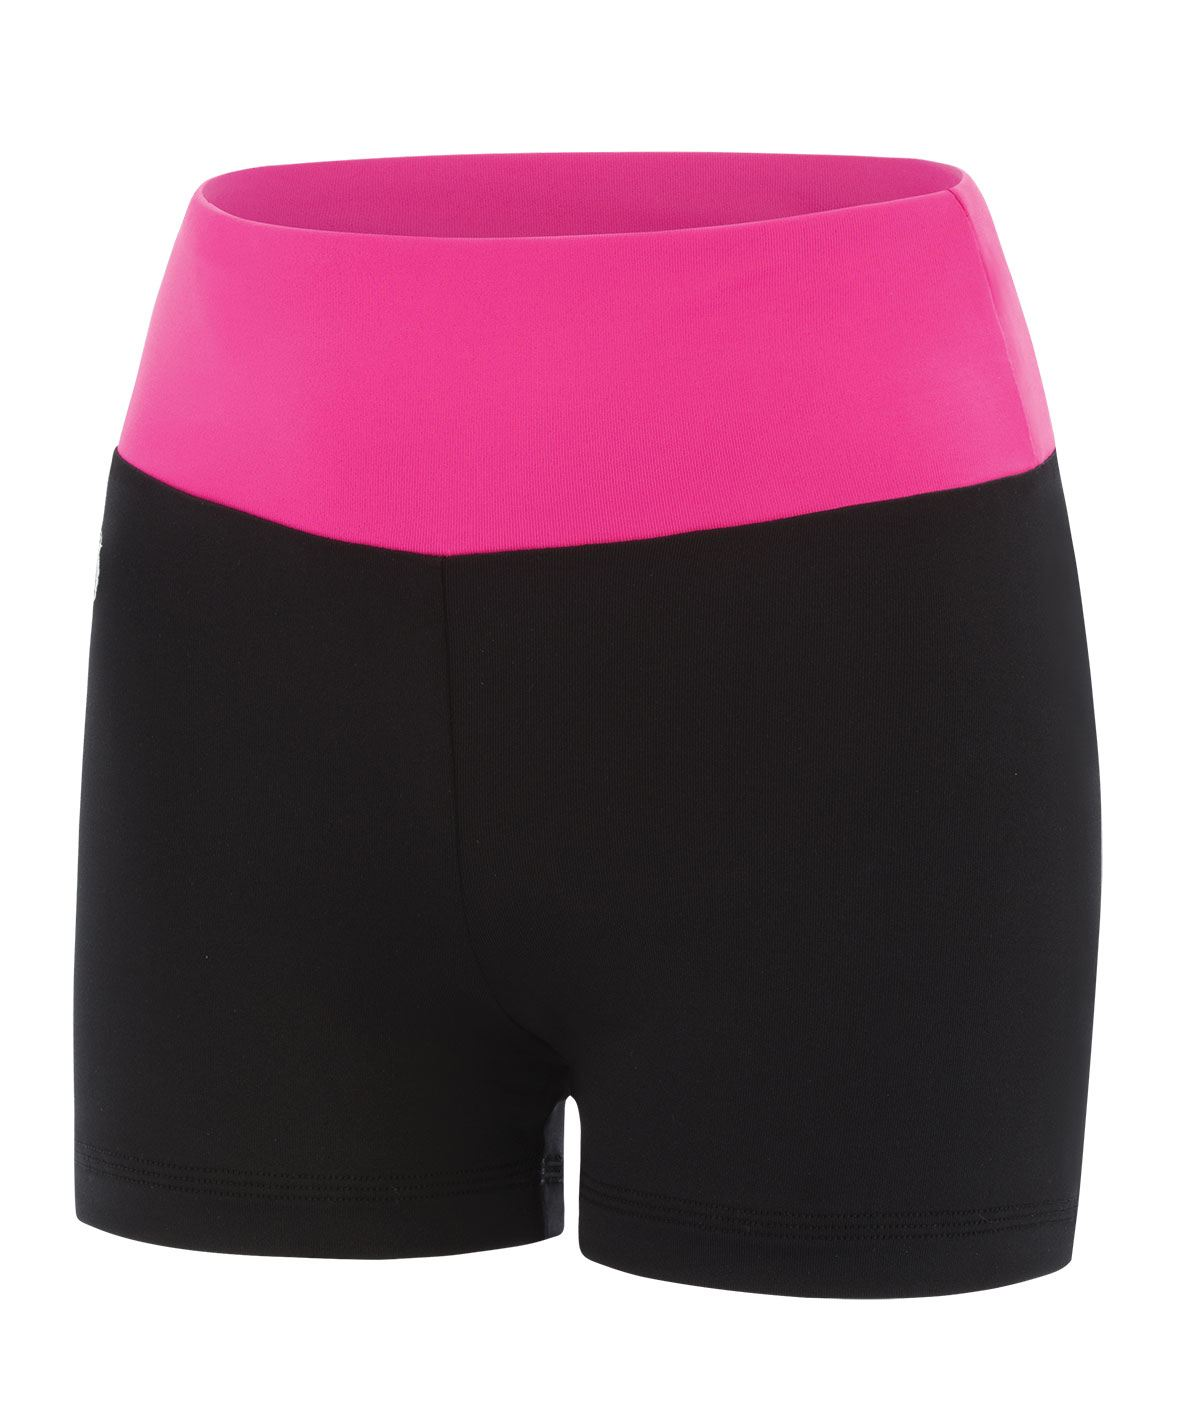 GK All Star Black High Waisted Cheer Shorts with Colorblock Waistband